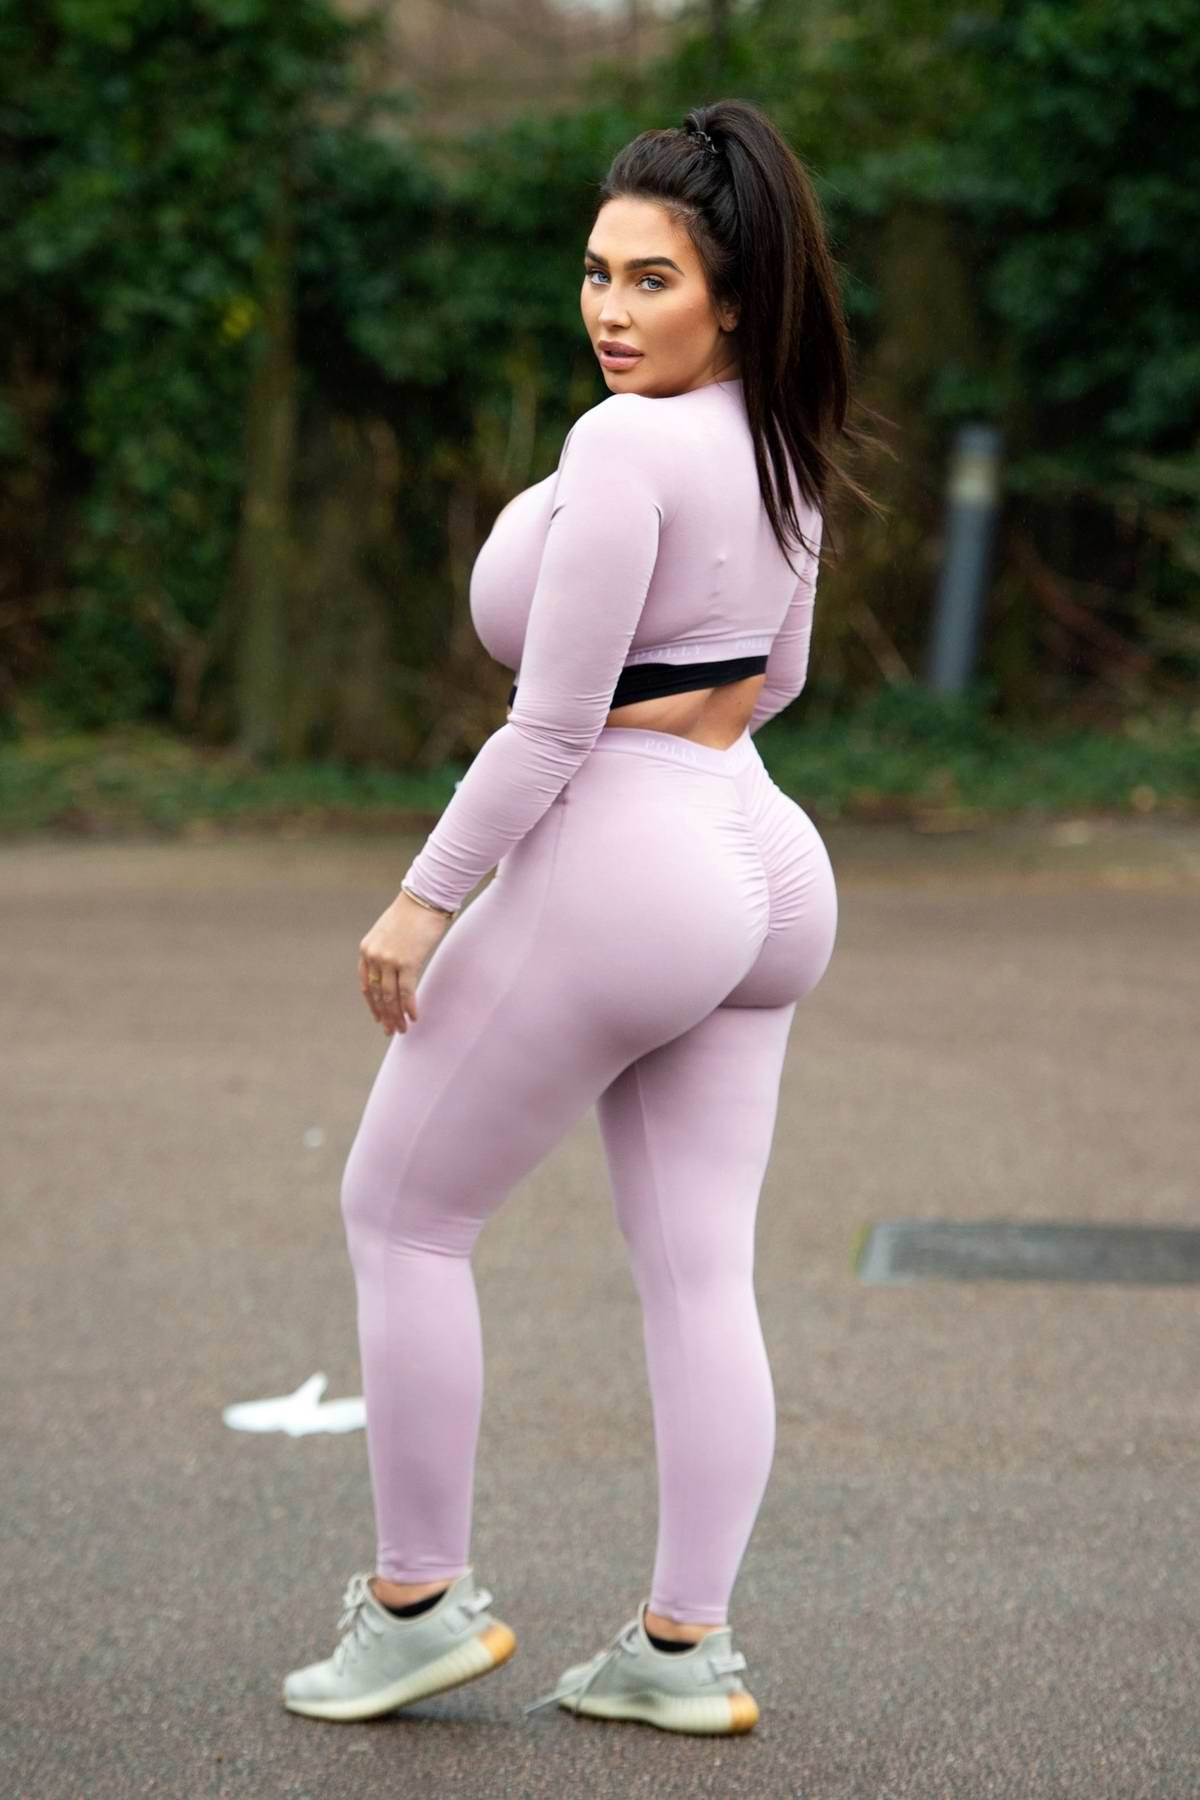 Lauren Goodger seen leaving her house to go out for a morning run in Essex, UK